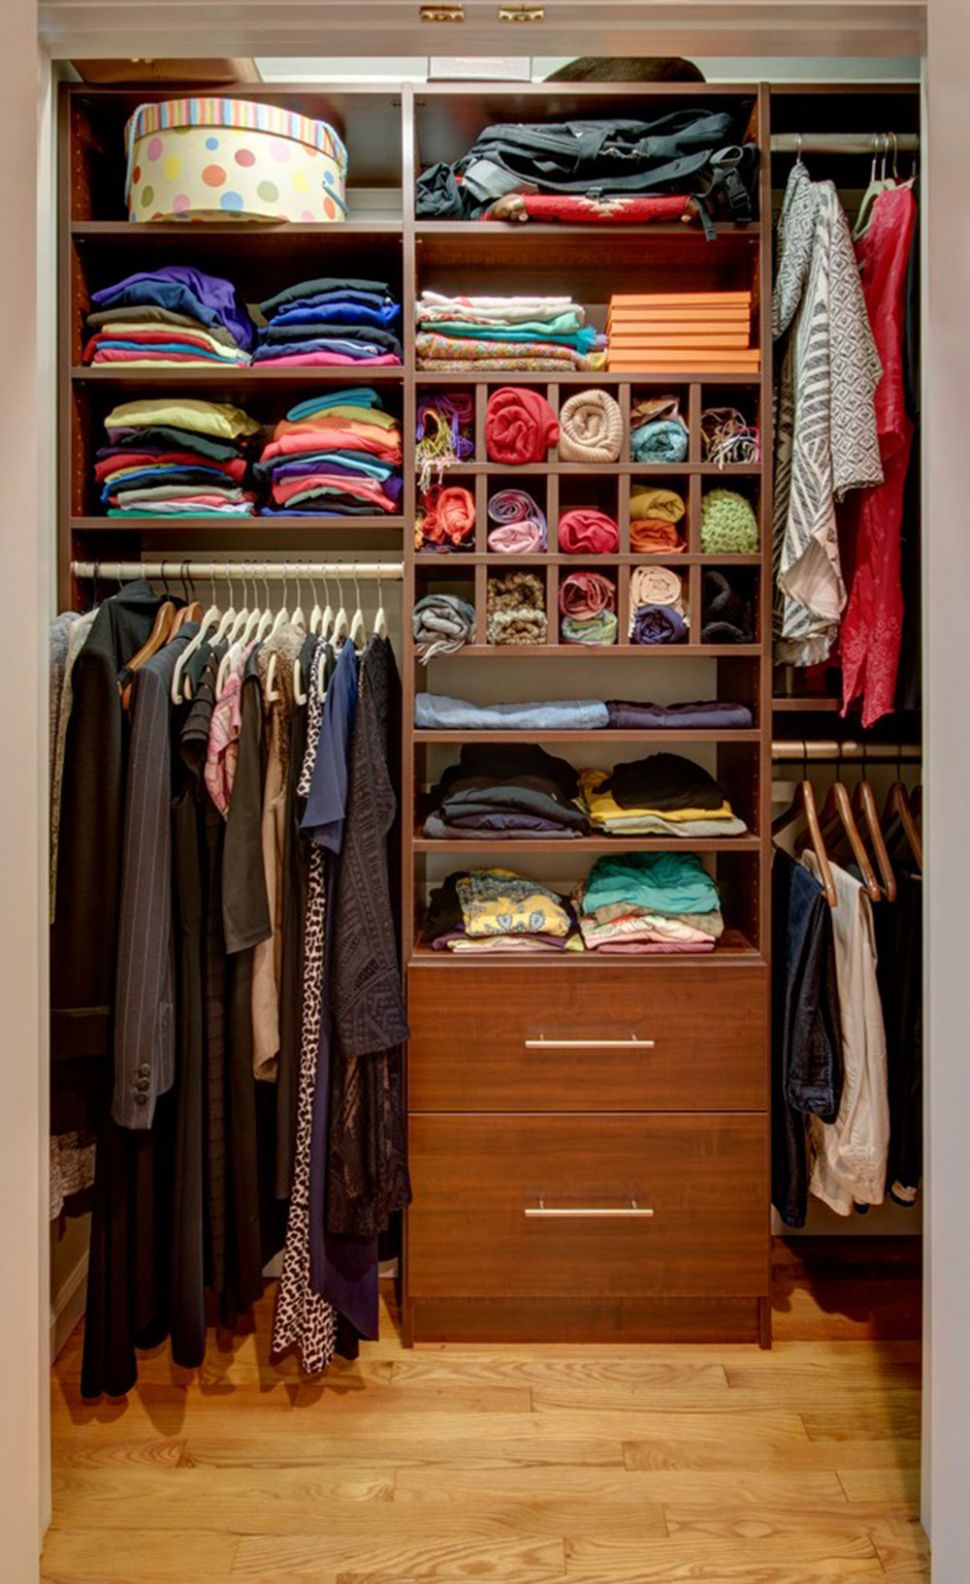 Closet remodel ideas: A guide on remodeling closets - closet remodel ideas